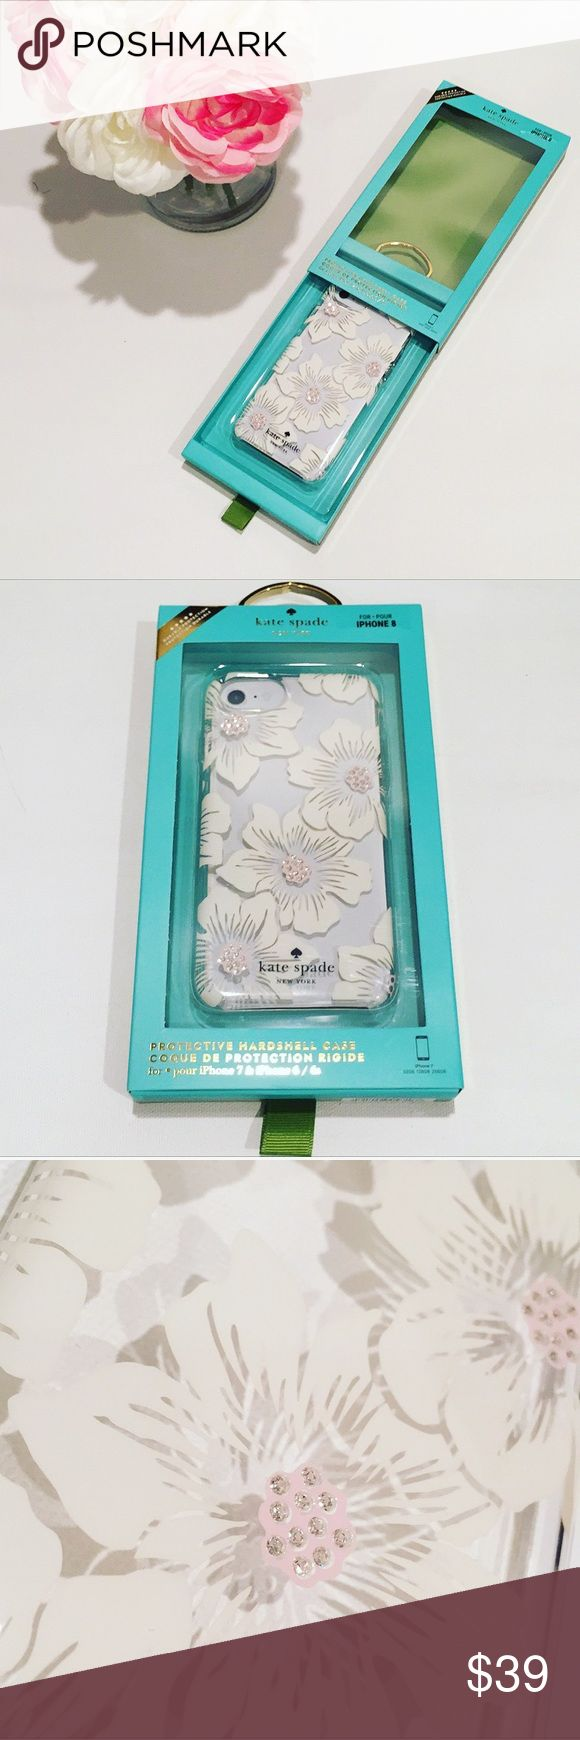 NWTs Kate Spade IPhone 6/6s/7/8 Case Protect your phone and add a pop of pretty with this kate spade new york hardshell case. The solid construction keeps your phone safe from accidental drops, while convenient cutouts let you easily access functions. A little bit of bling on this floral kate spade new york hardshell case makes it fashionable as well as functional. No trades  Firm unless Bundled with seller discount kate spade Accessories Phone Cases